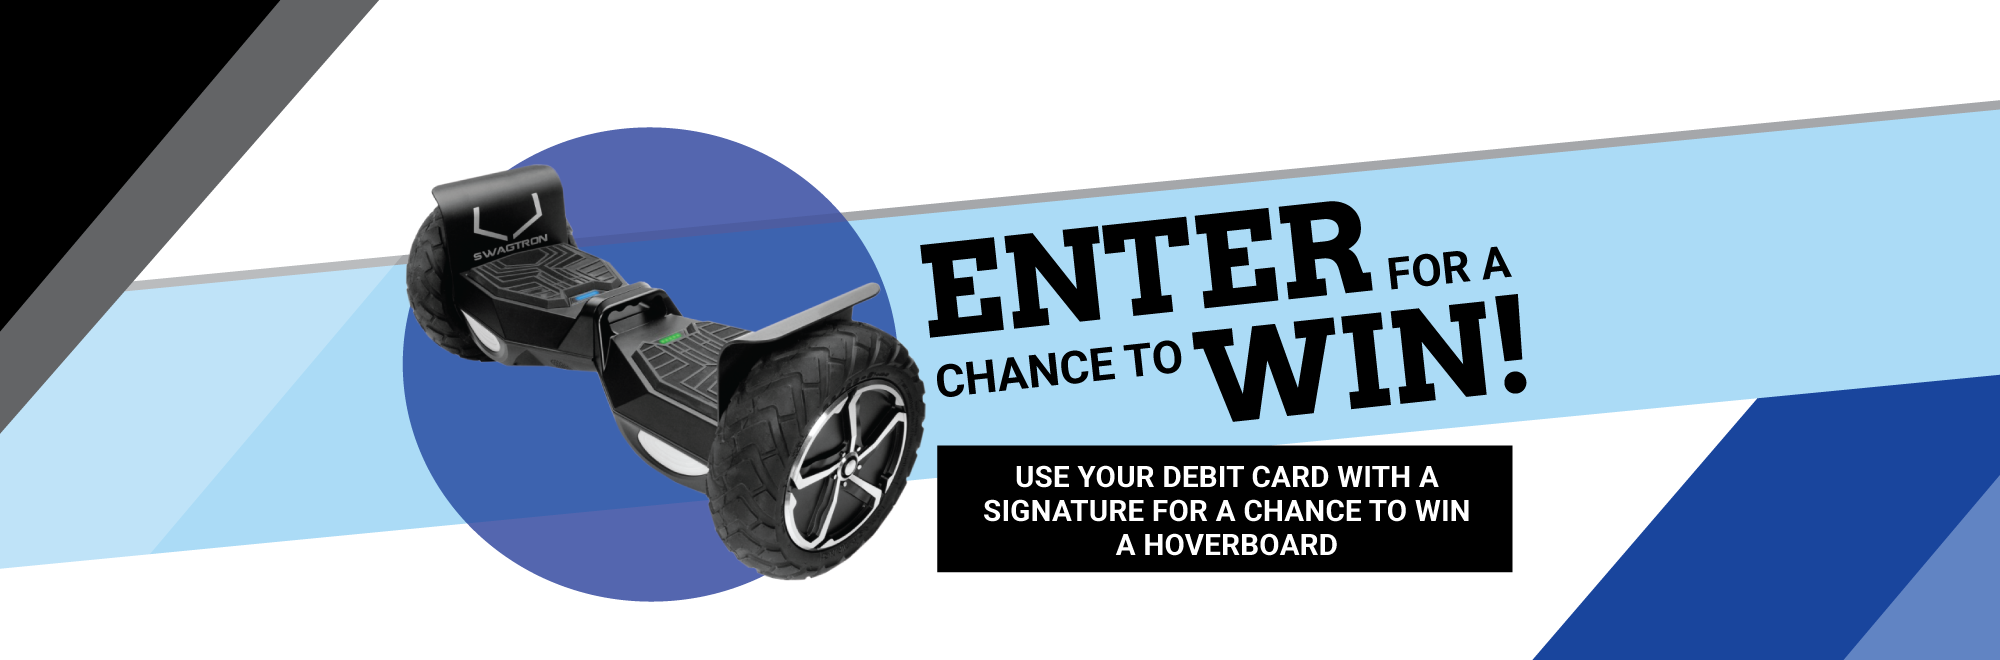 Use your debit card and be entered to win a hoverboard!